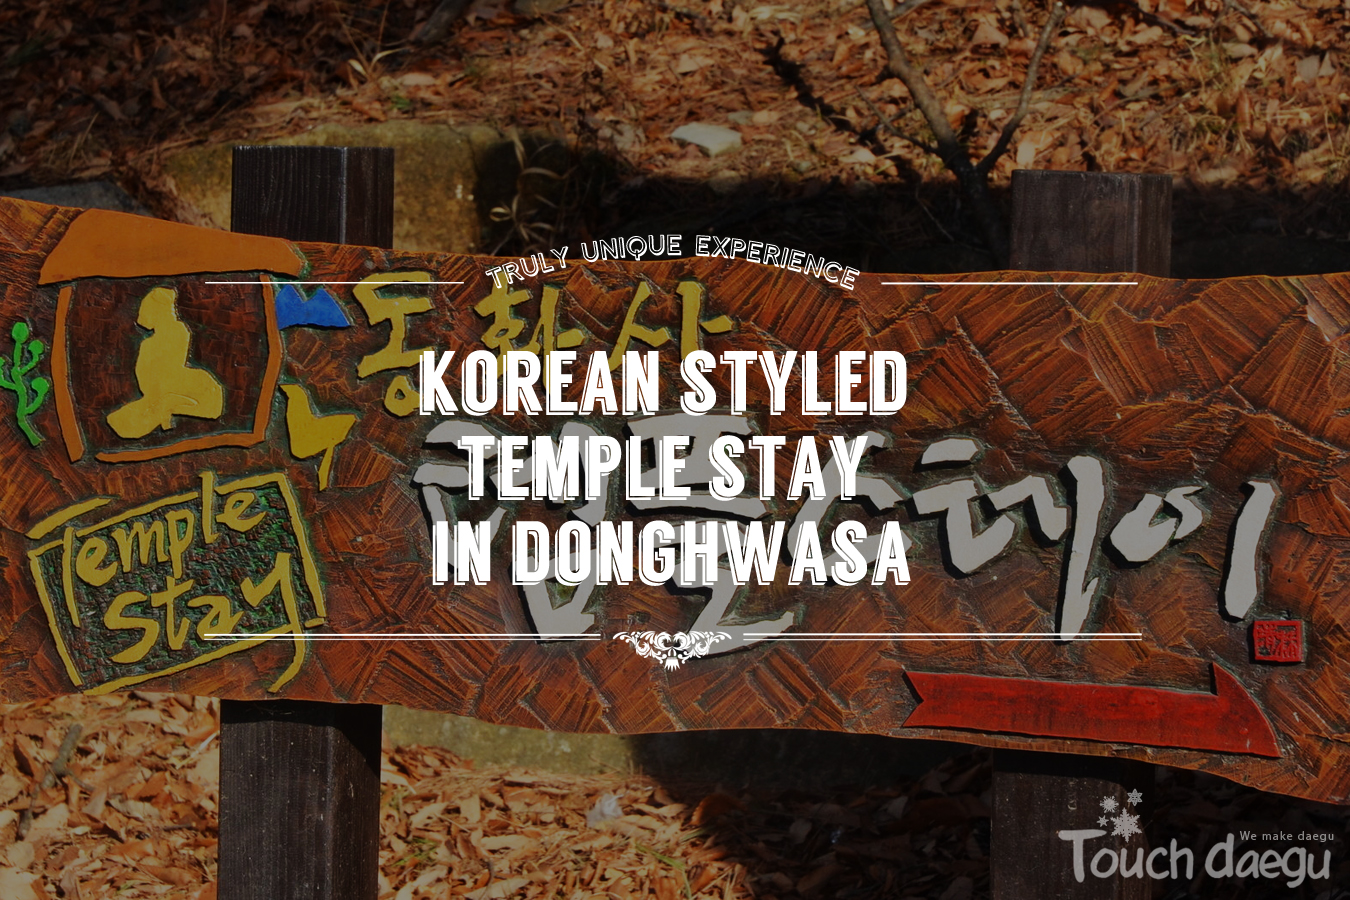 Korean Styled Temple Stay in Donghwasa